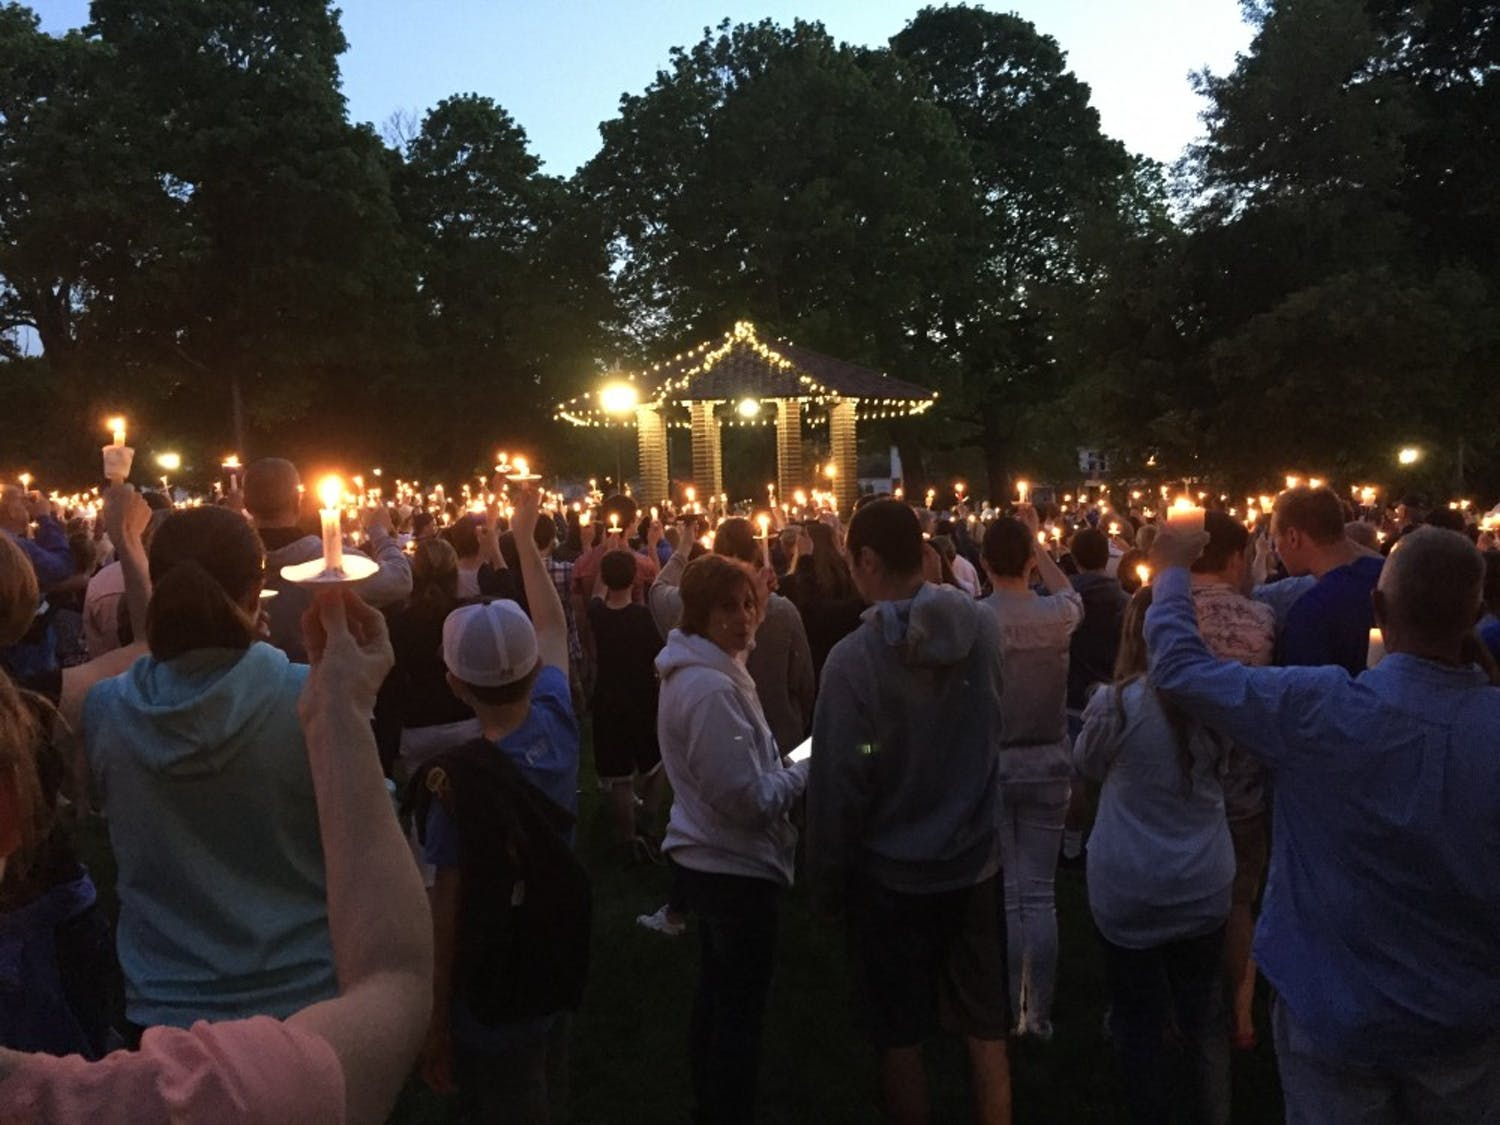 A candlelight vigil was held Tuesday night in Franklin, Mass. to support Doherty and his family.